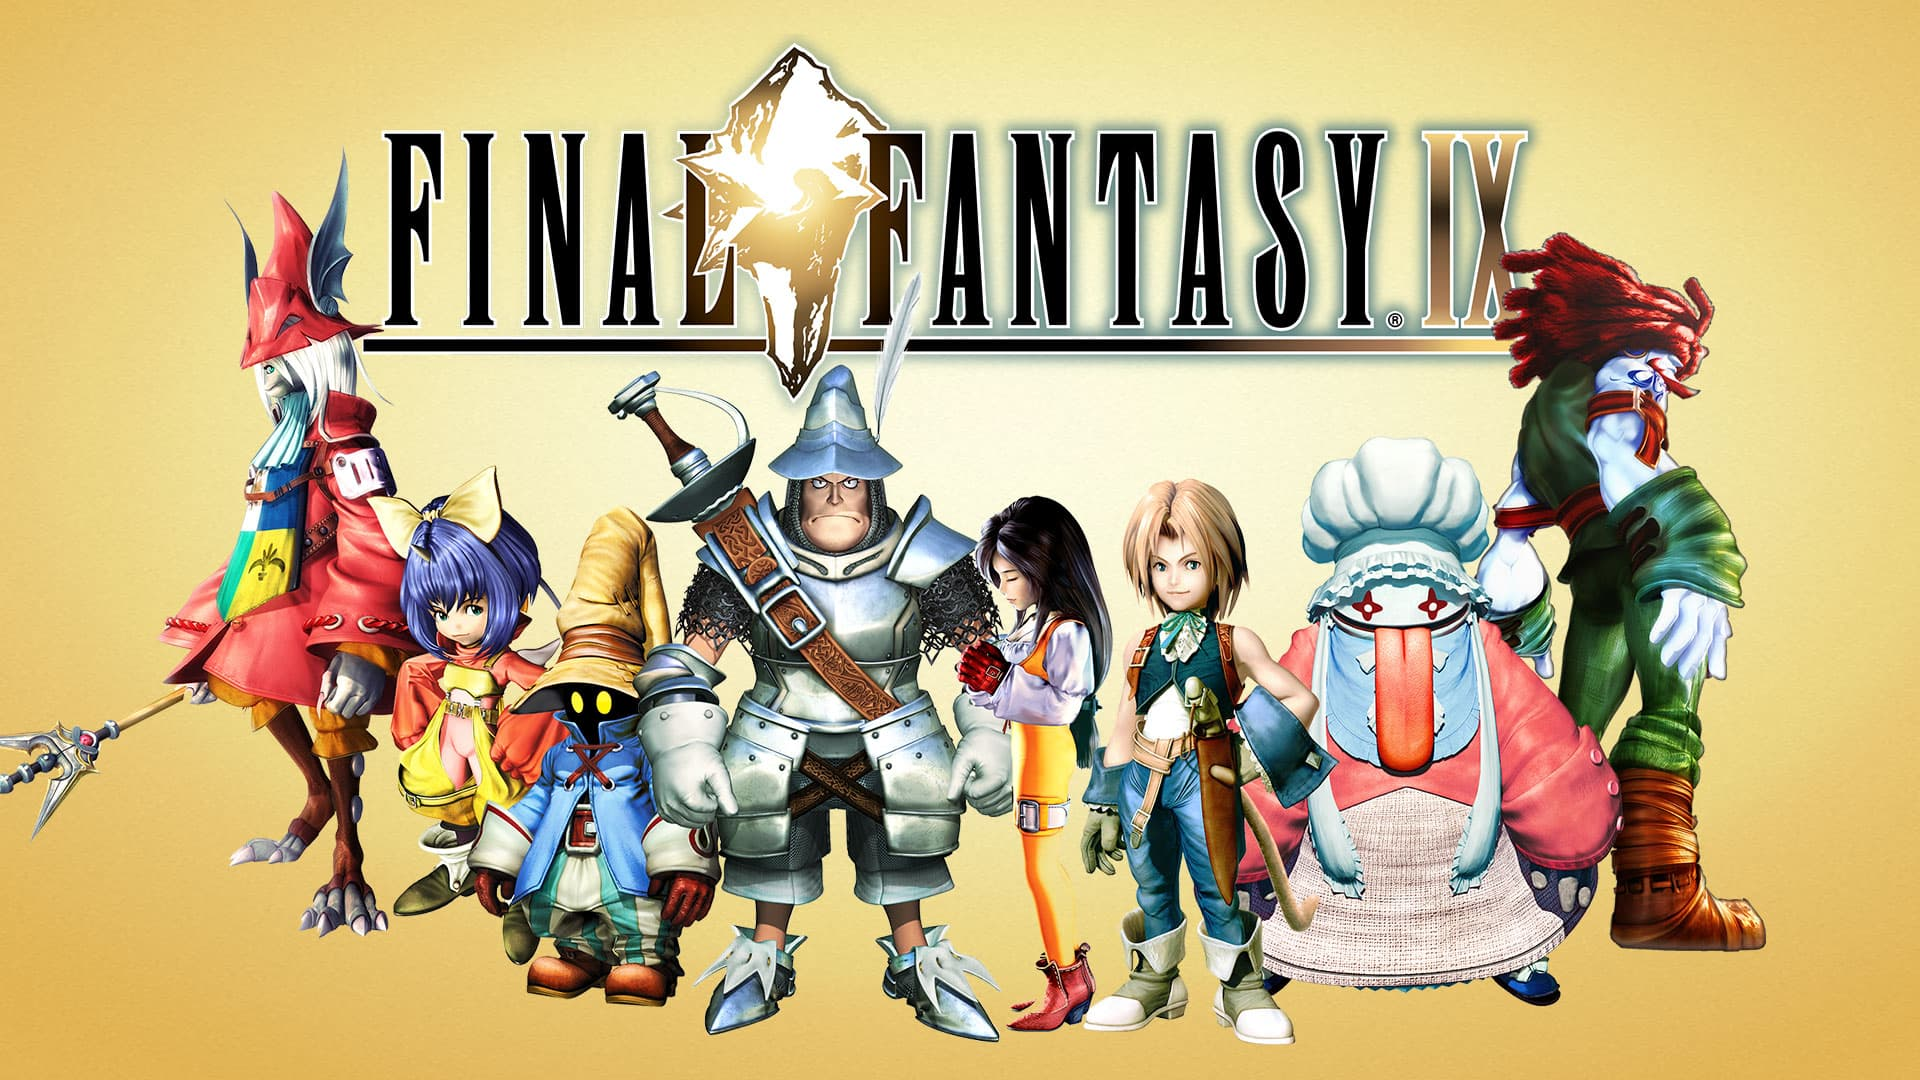 A bunch of Square Enix games are on sale right now. Half off of popular titles including Final Fantasy IX